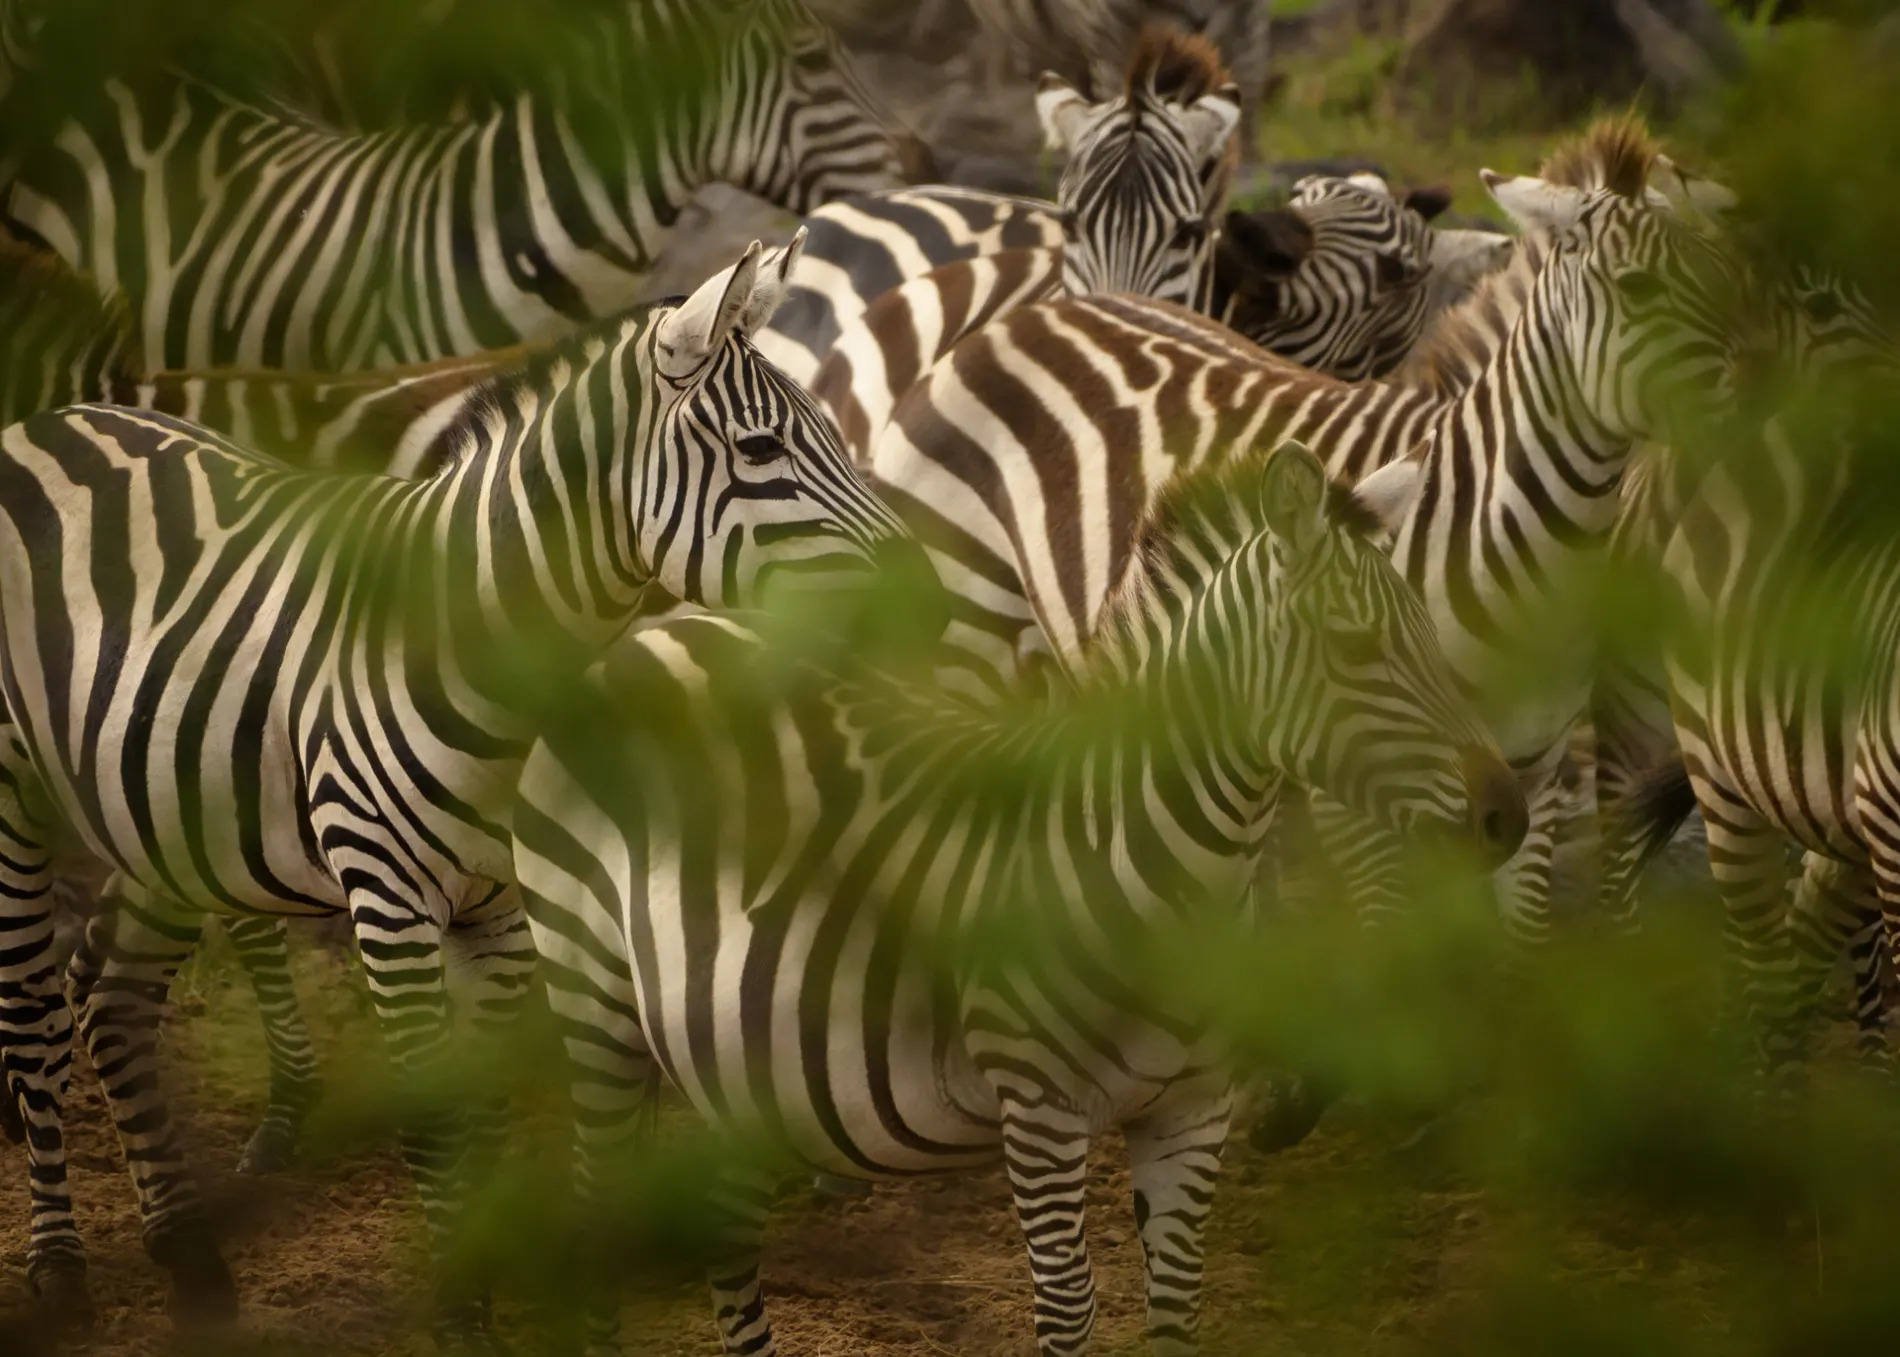 Zebra in the greenery